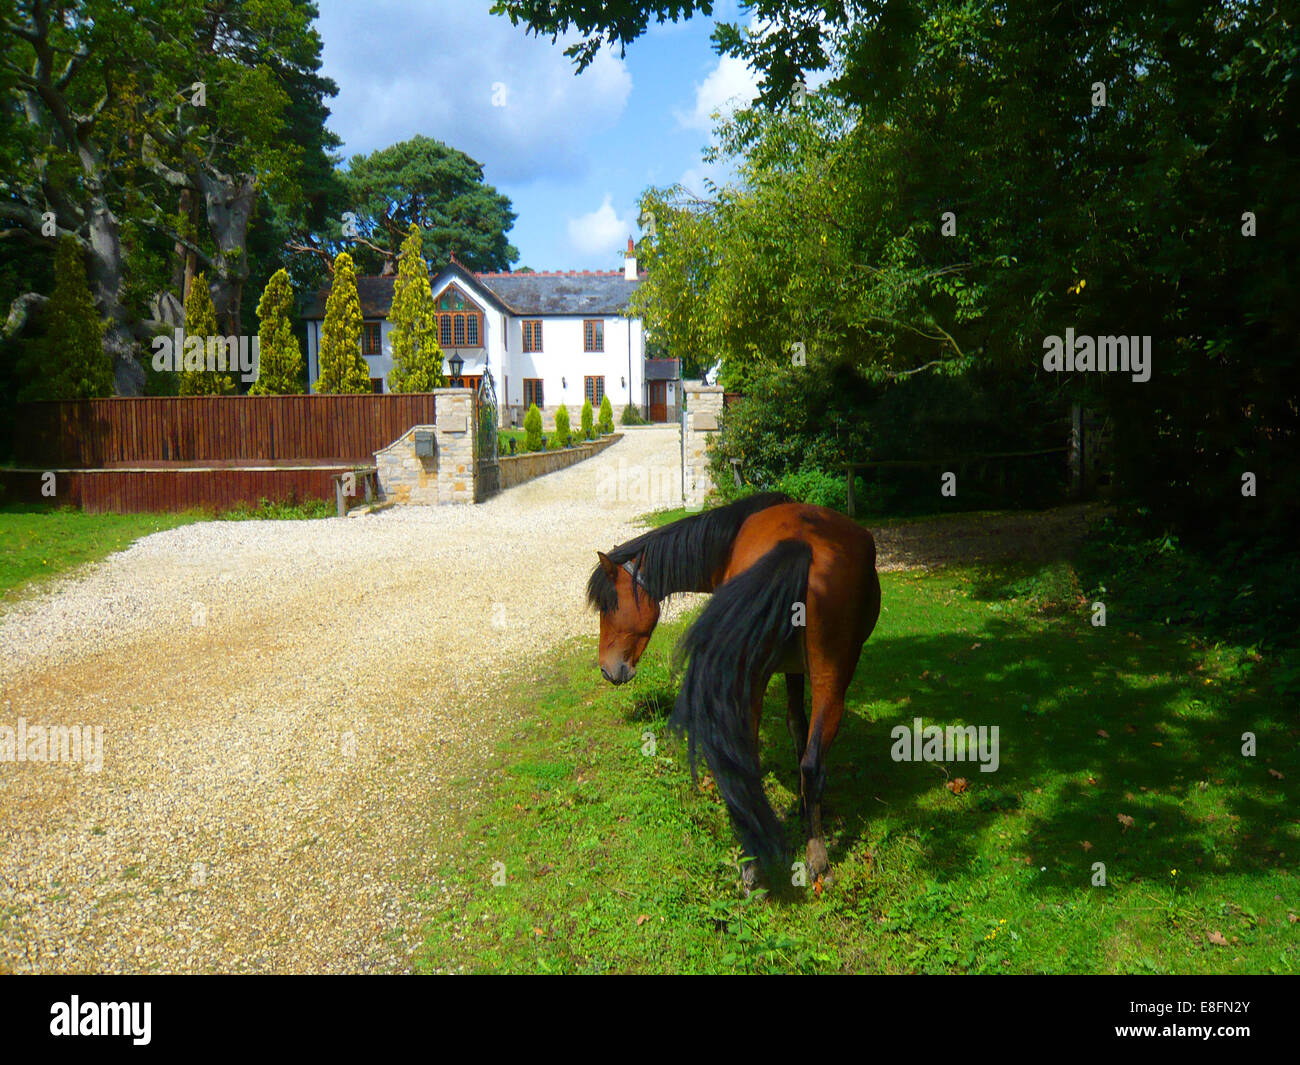 UK, Hampshire, New Forest, poney outside house Photo Stock